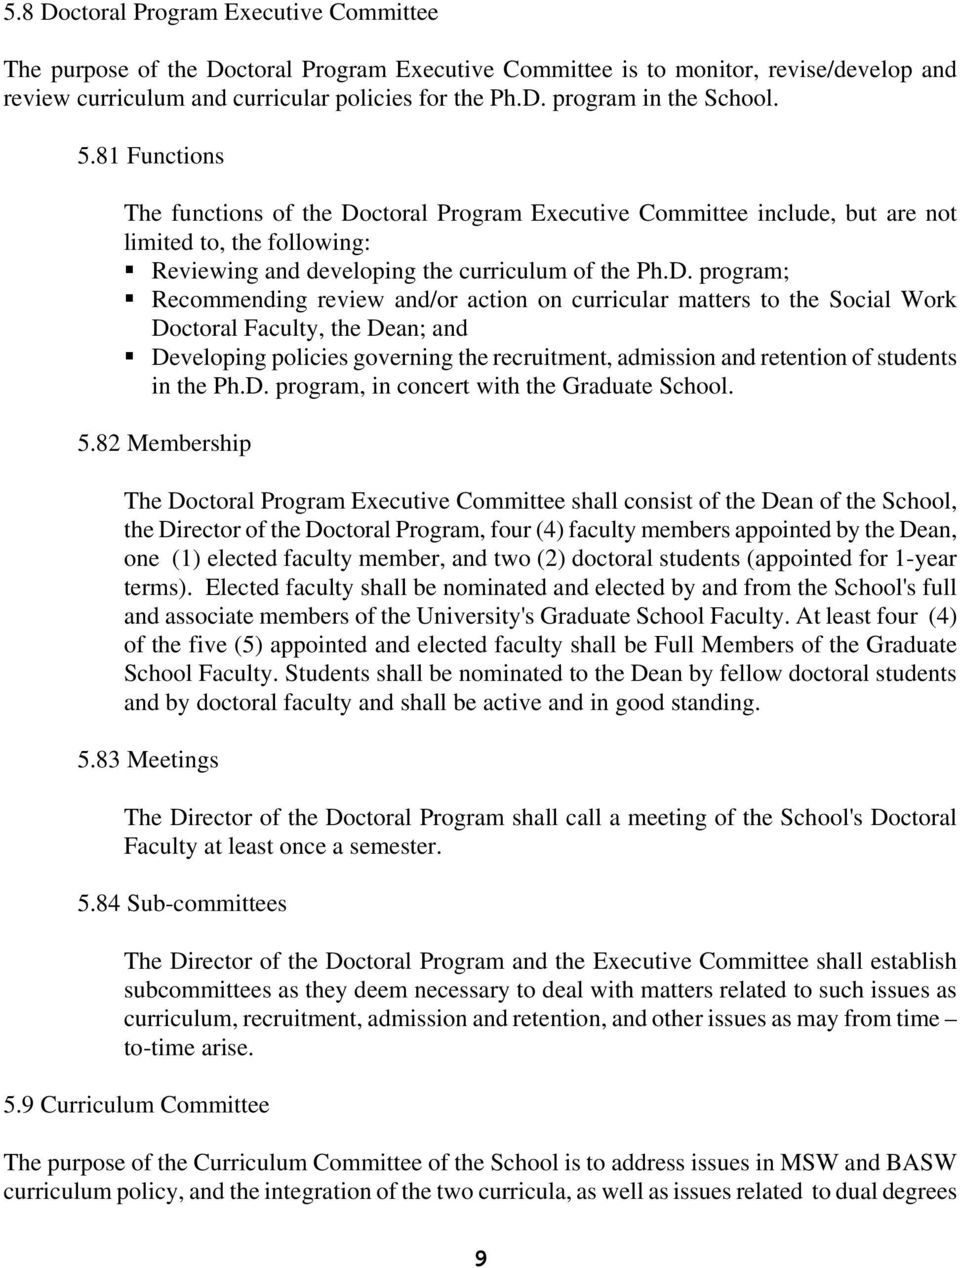 ctoral Program Executive Committee include, but are not limited to, the following: Reviewing and developing the curriculum of the Ph.D.